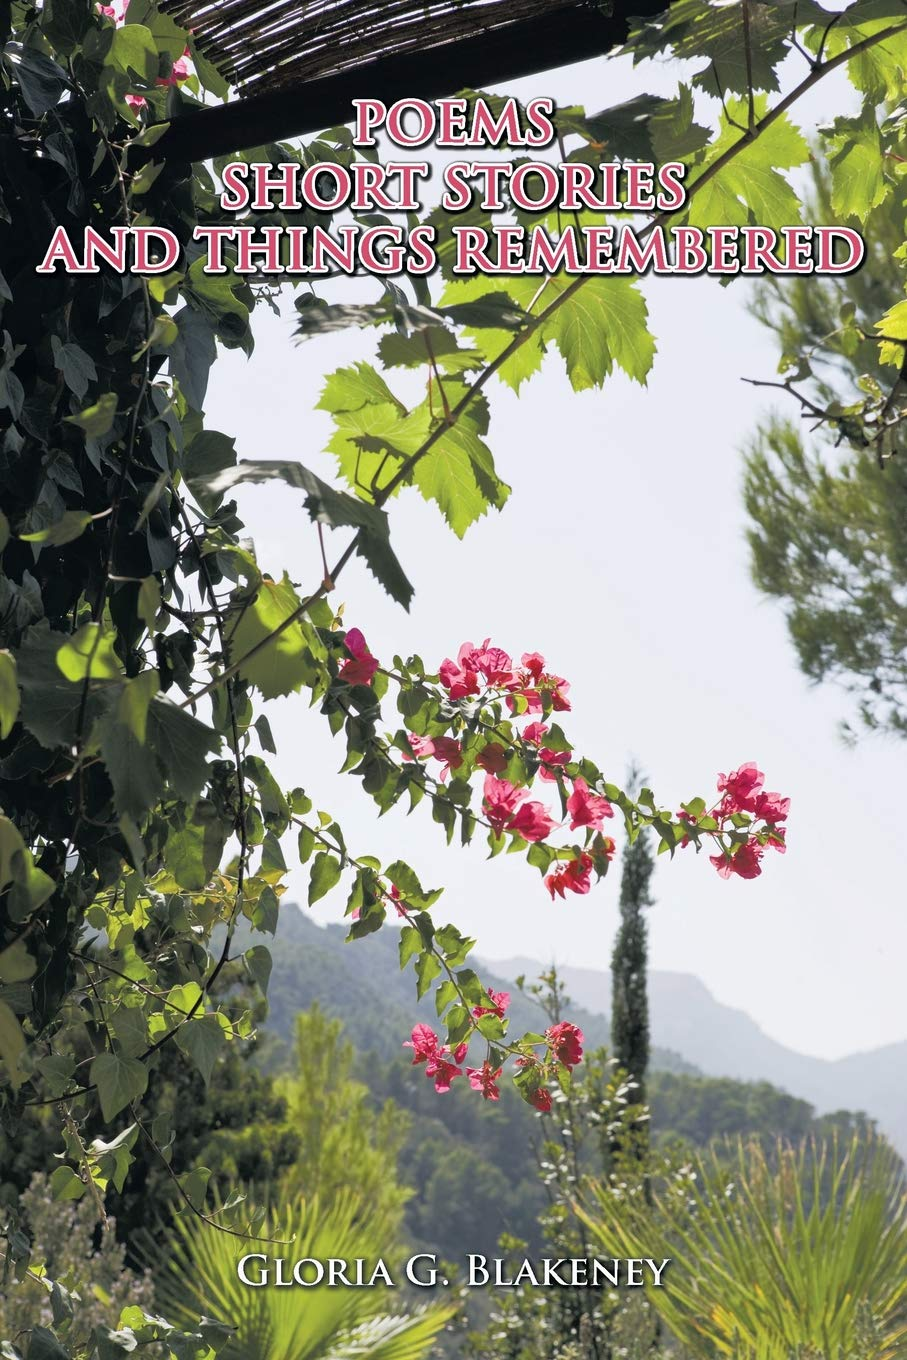 POEMS SHORT STORIES AND THINGS REMEMBERED